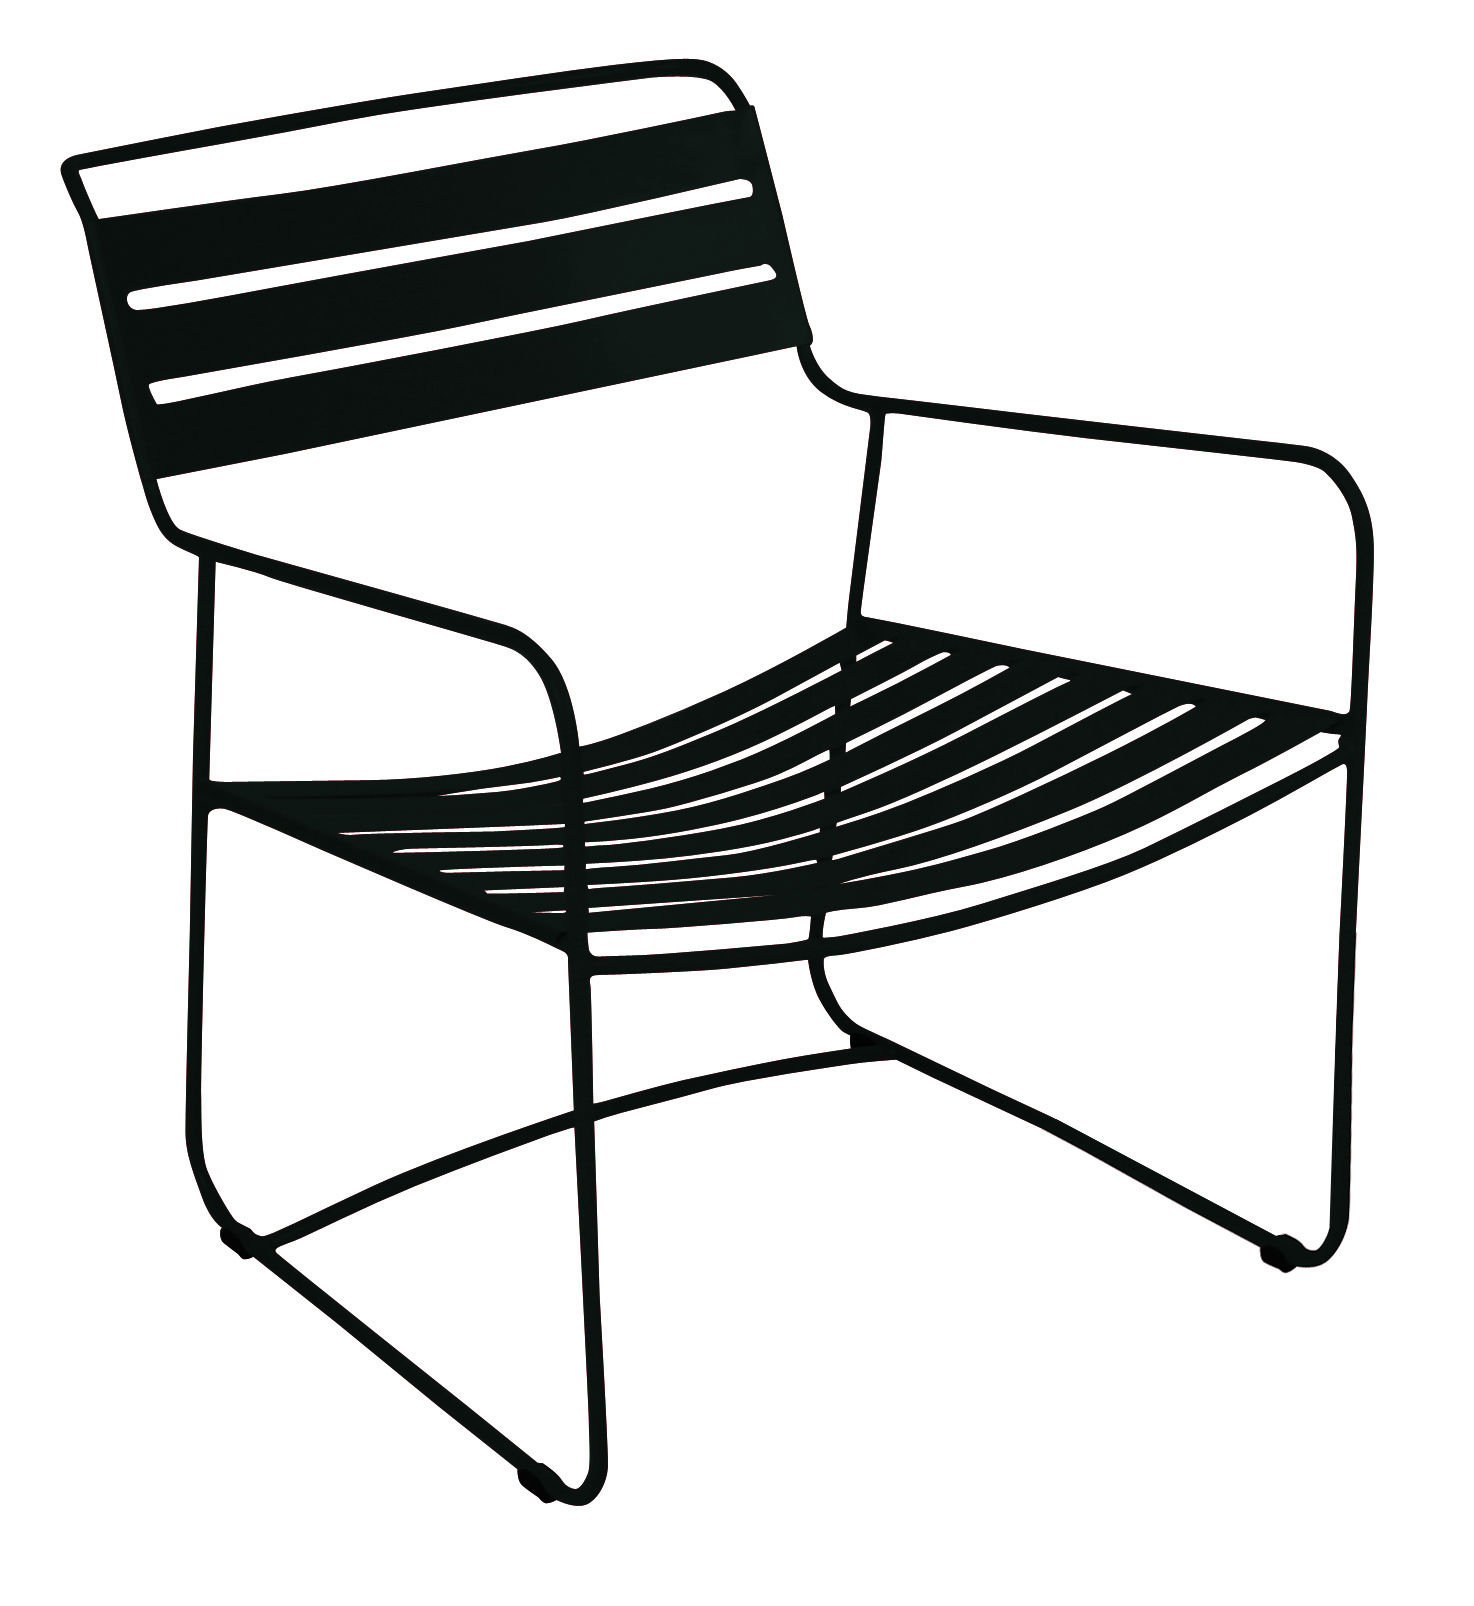 Furniture - Armchairs - Surprising Lounger Low armchair - Armchair by Fermob - Liquorice - Steel